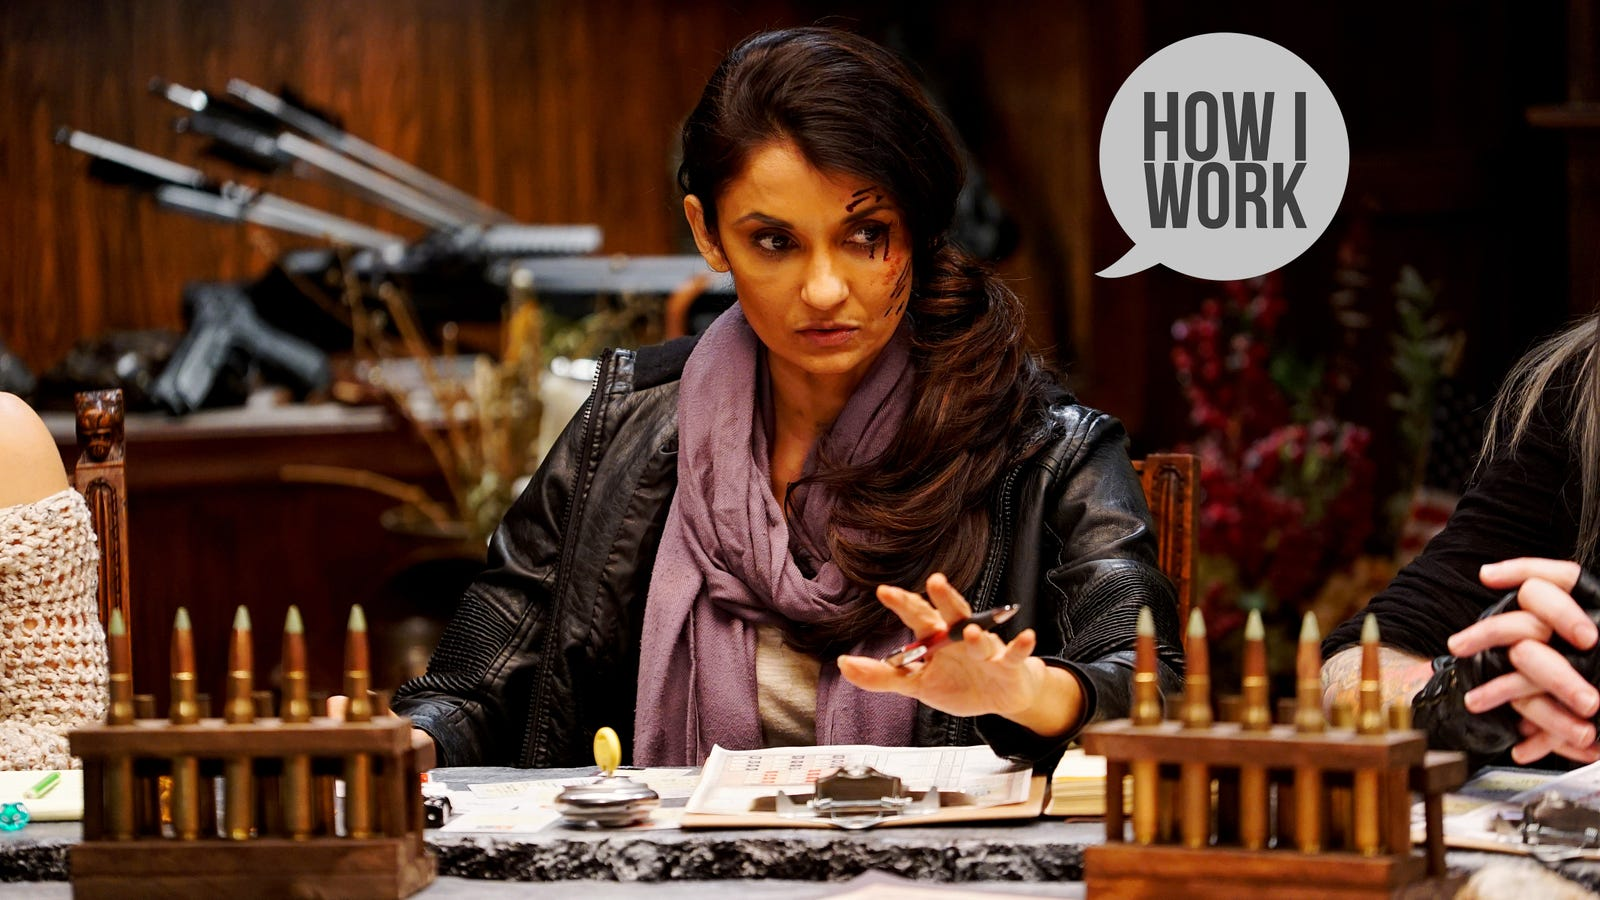 I'm Actress Anjali Bhimani, And This Is How I Work